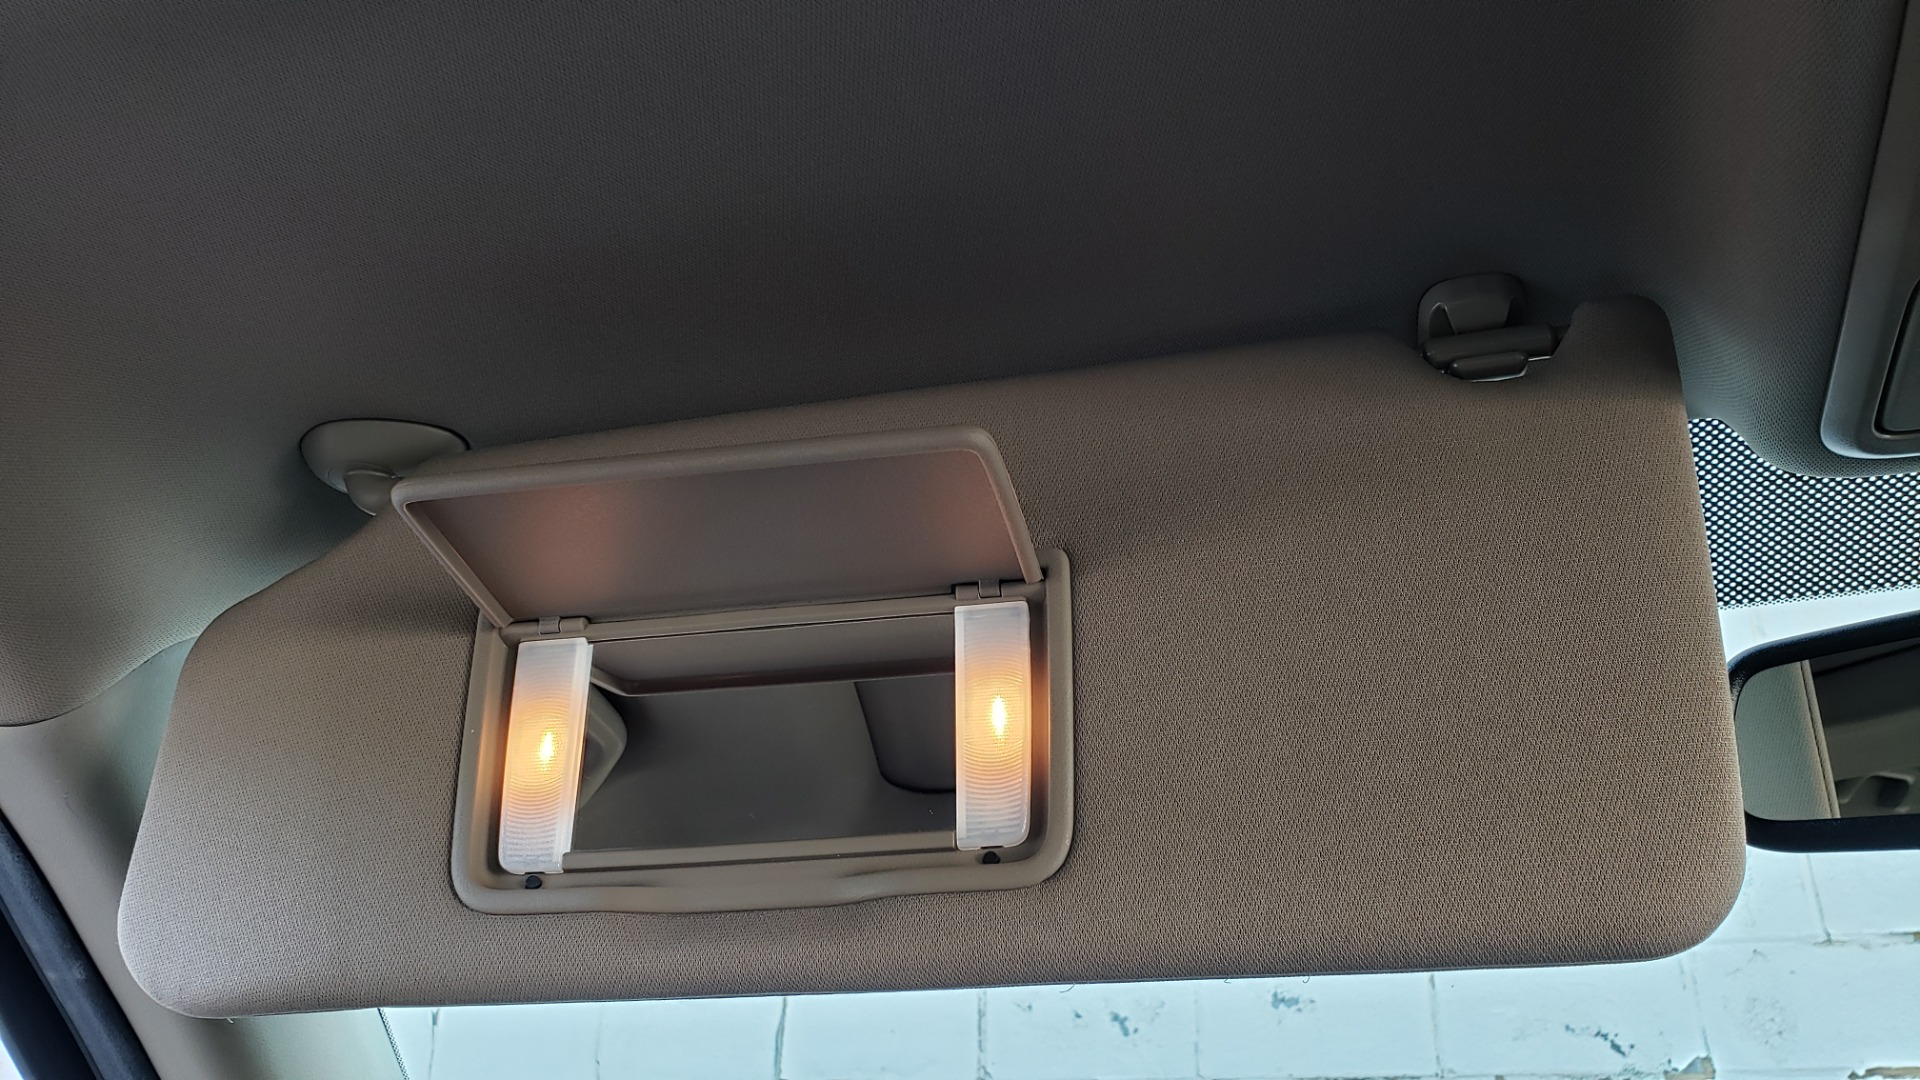 Used 2014 Honda PILOT EX-L / SUNROOF / HTD STS / DUAL-ZONE CLIMATE / REARVIEW for sale $16,995 at Formula Imports in Charlotte NC 28227 51